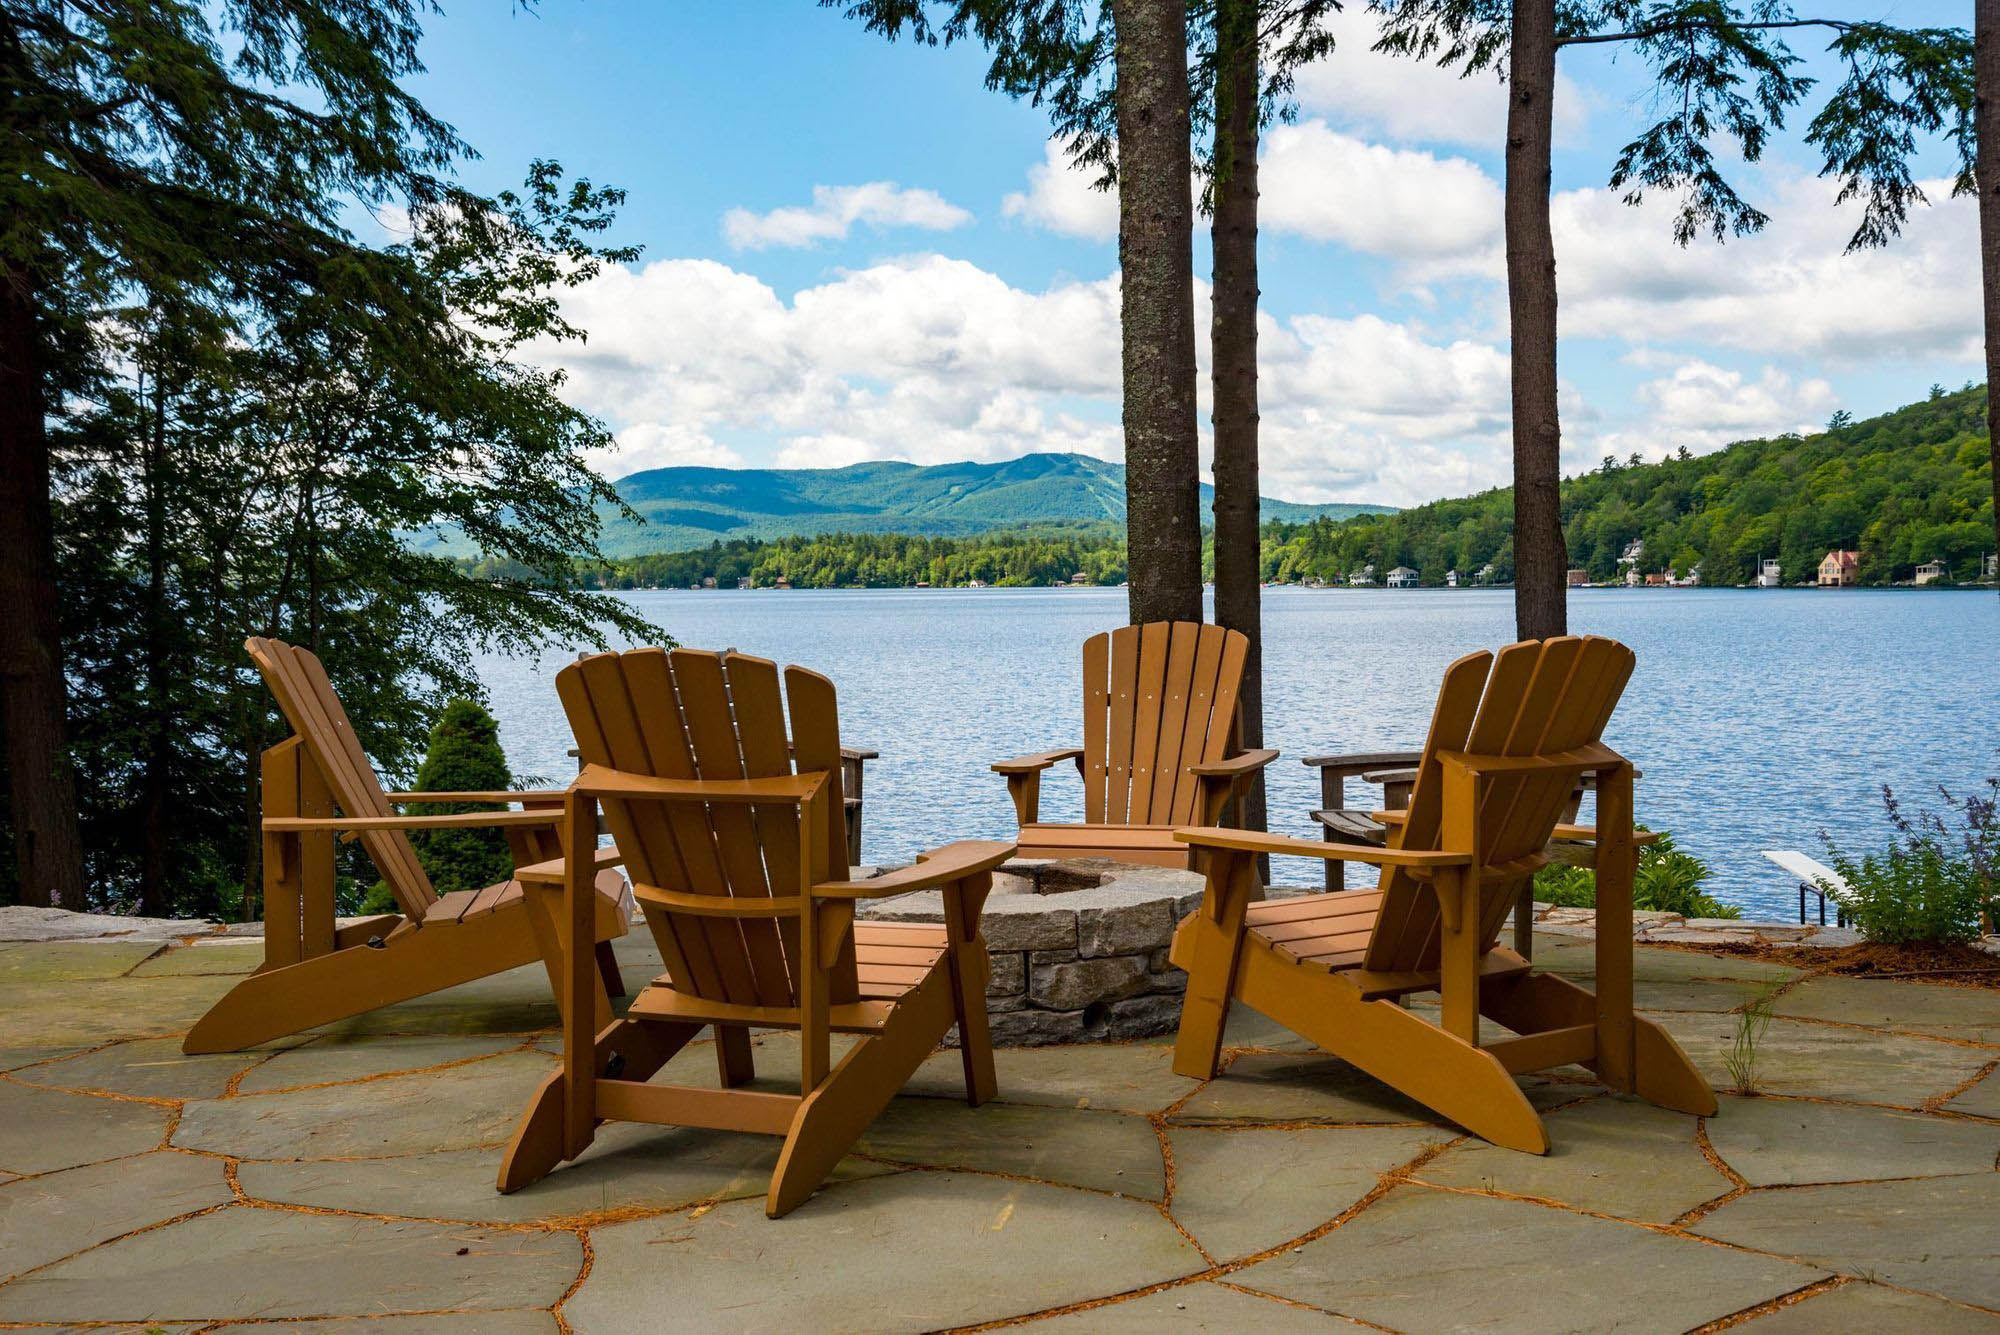 Simple outdoor patio furniture. Wood chairs around a stone fire pit with a fantastic water view.